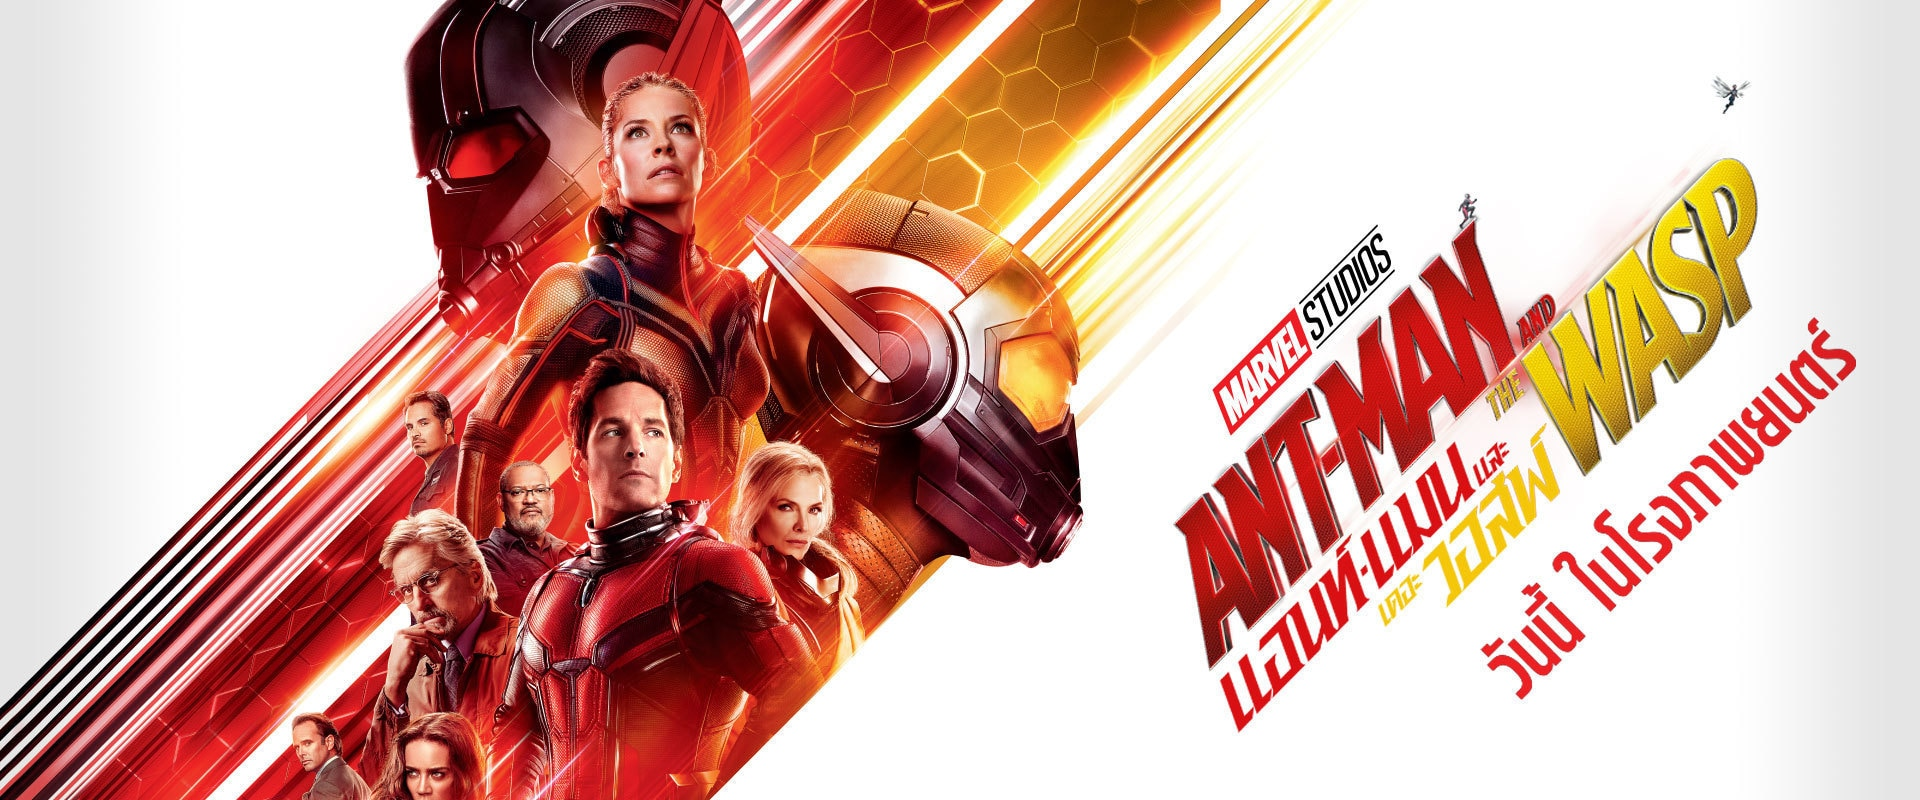 Marvel Studios' Ant-Man and The Wasp   Movies   Homepage   Marvel